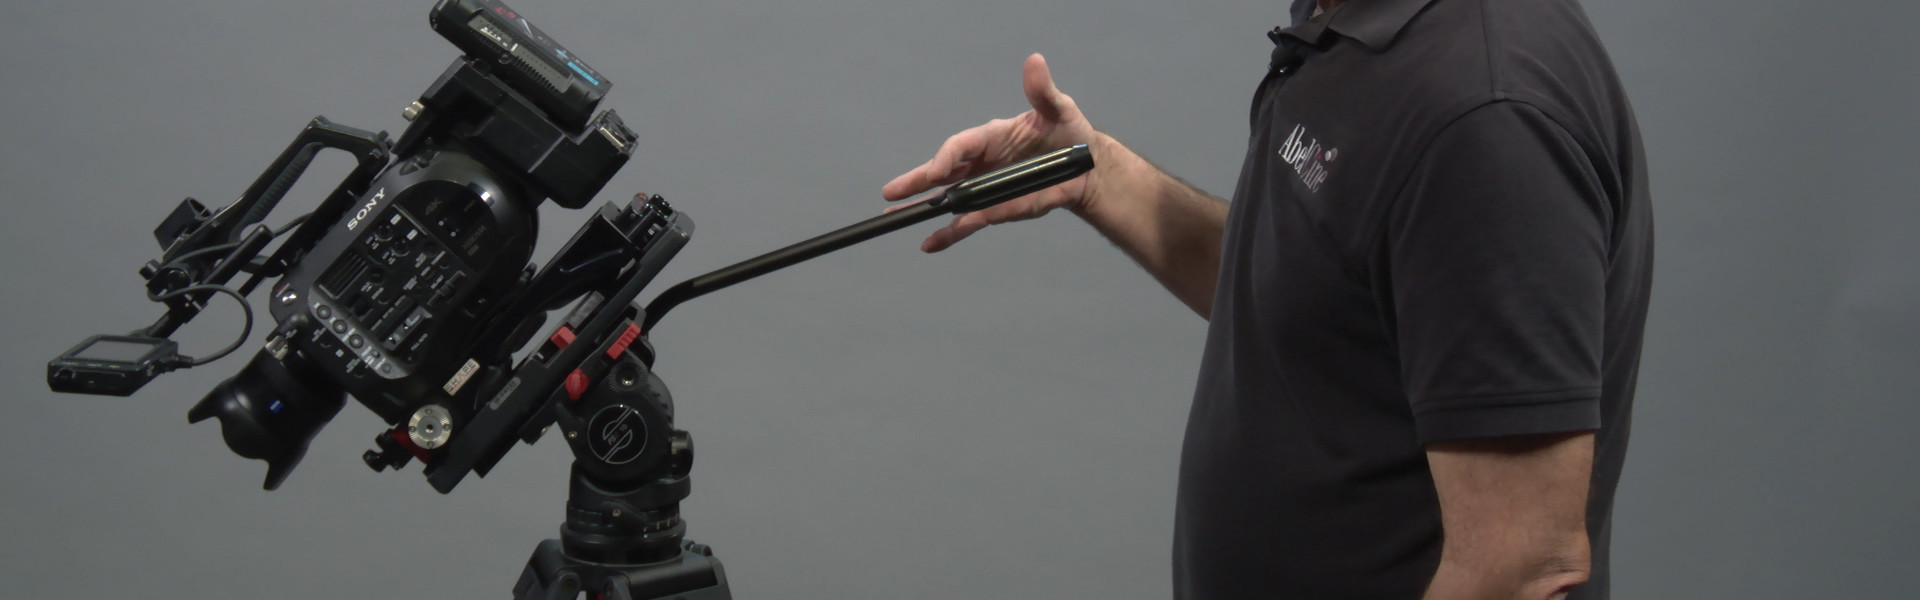 Header image for article At the Bench: Sachtler FSB 10